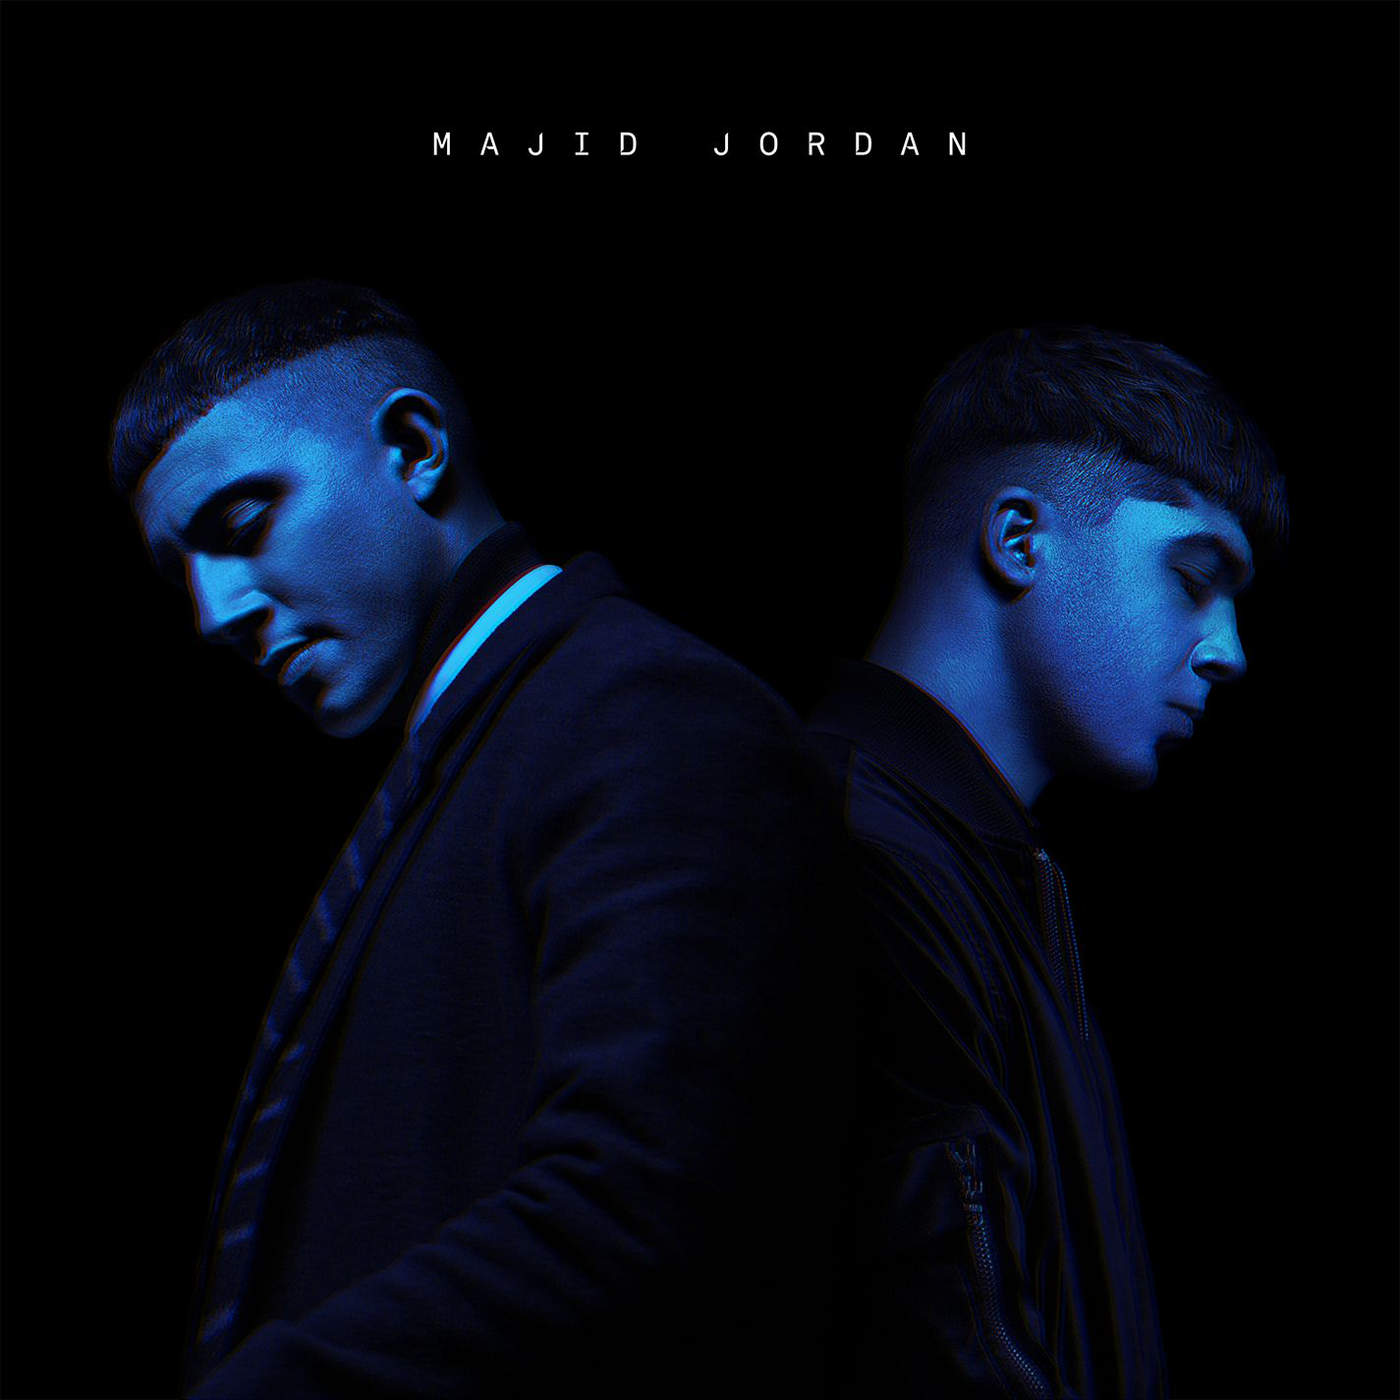 06306-majid-jordan-make-it-work